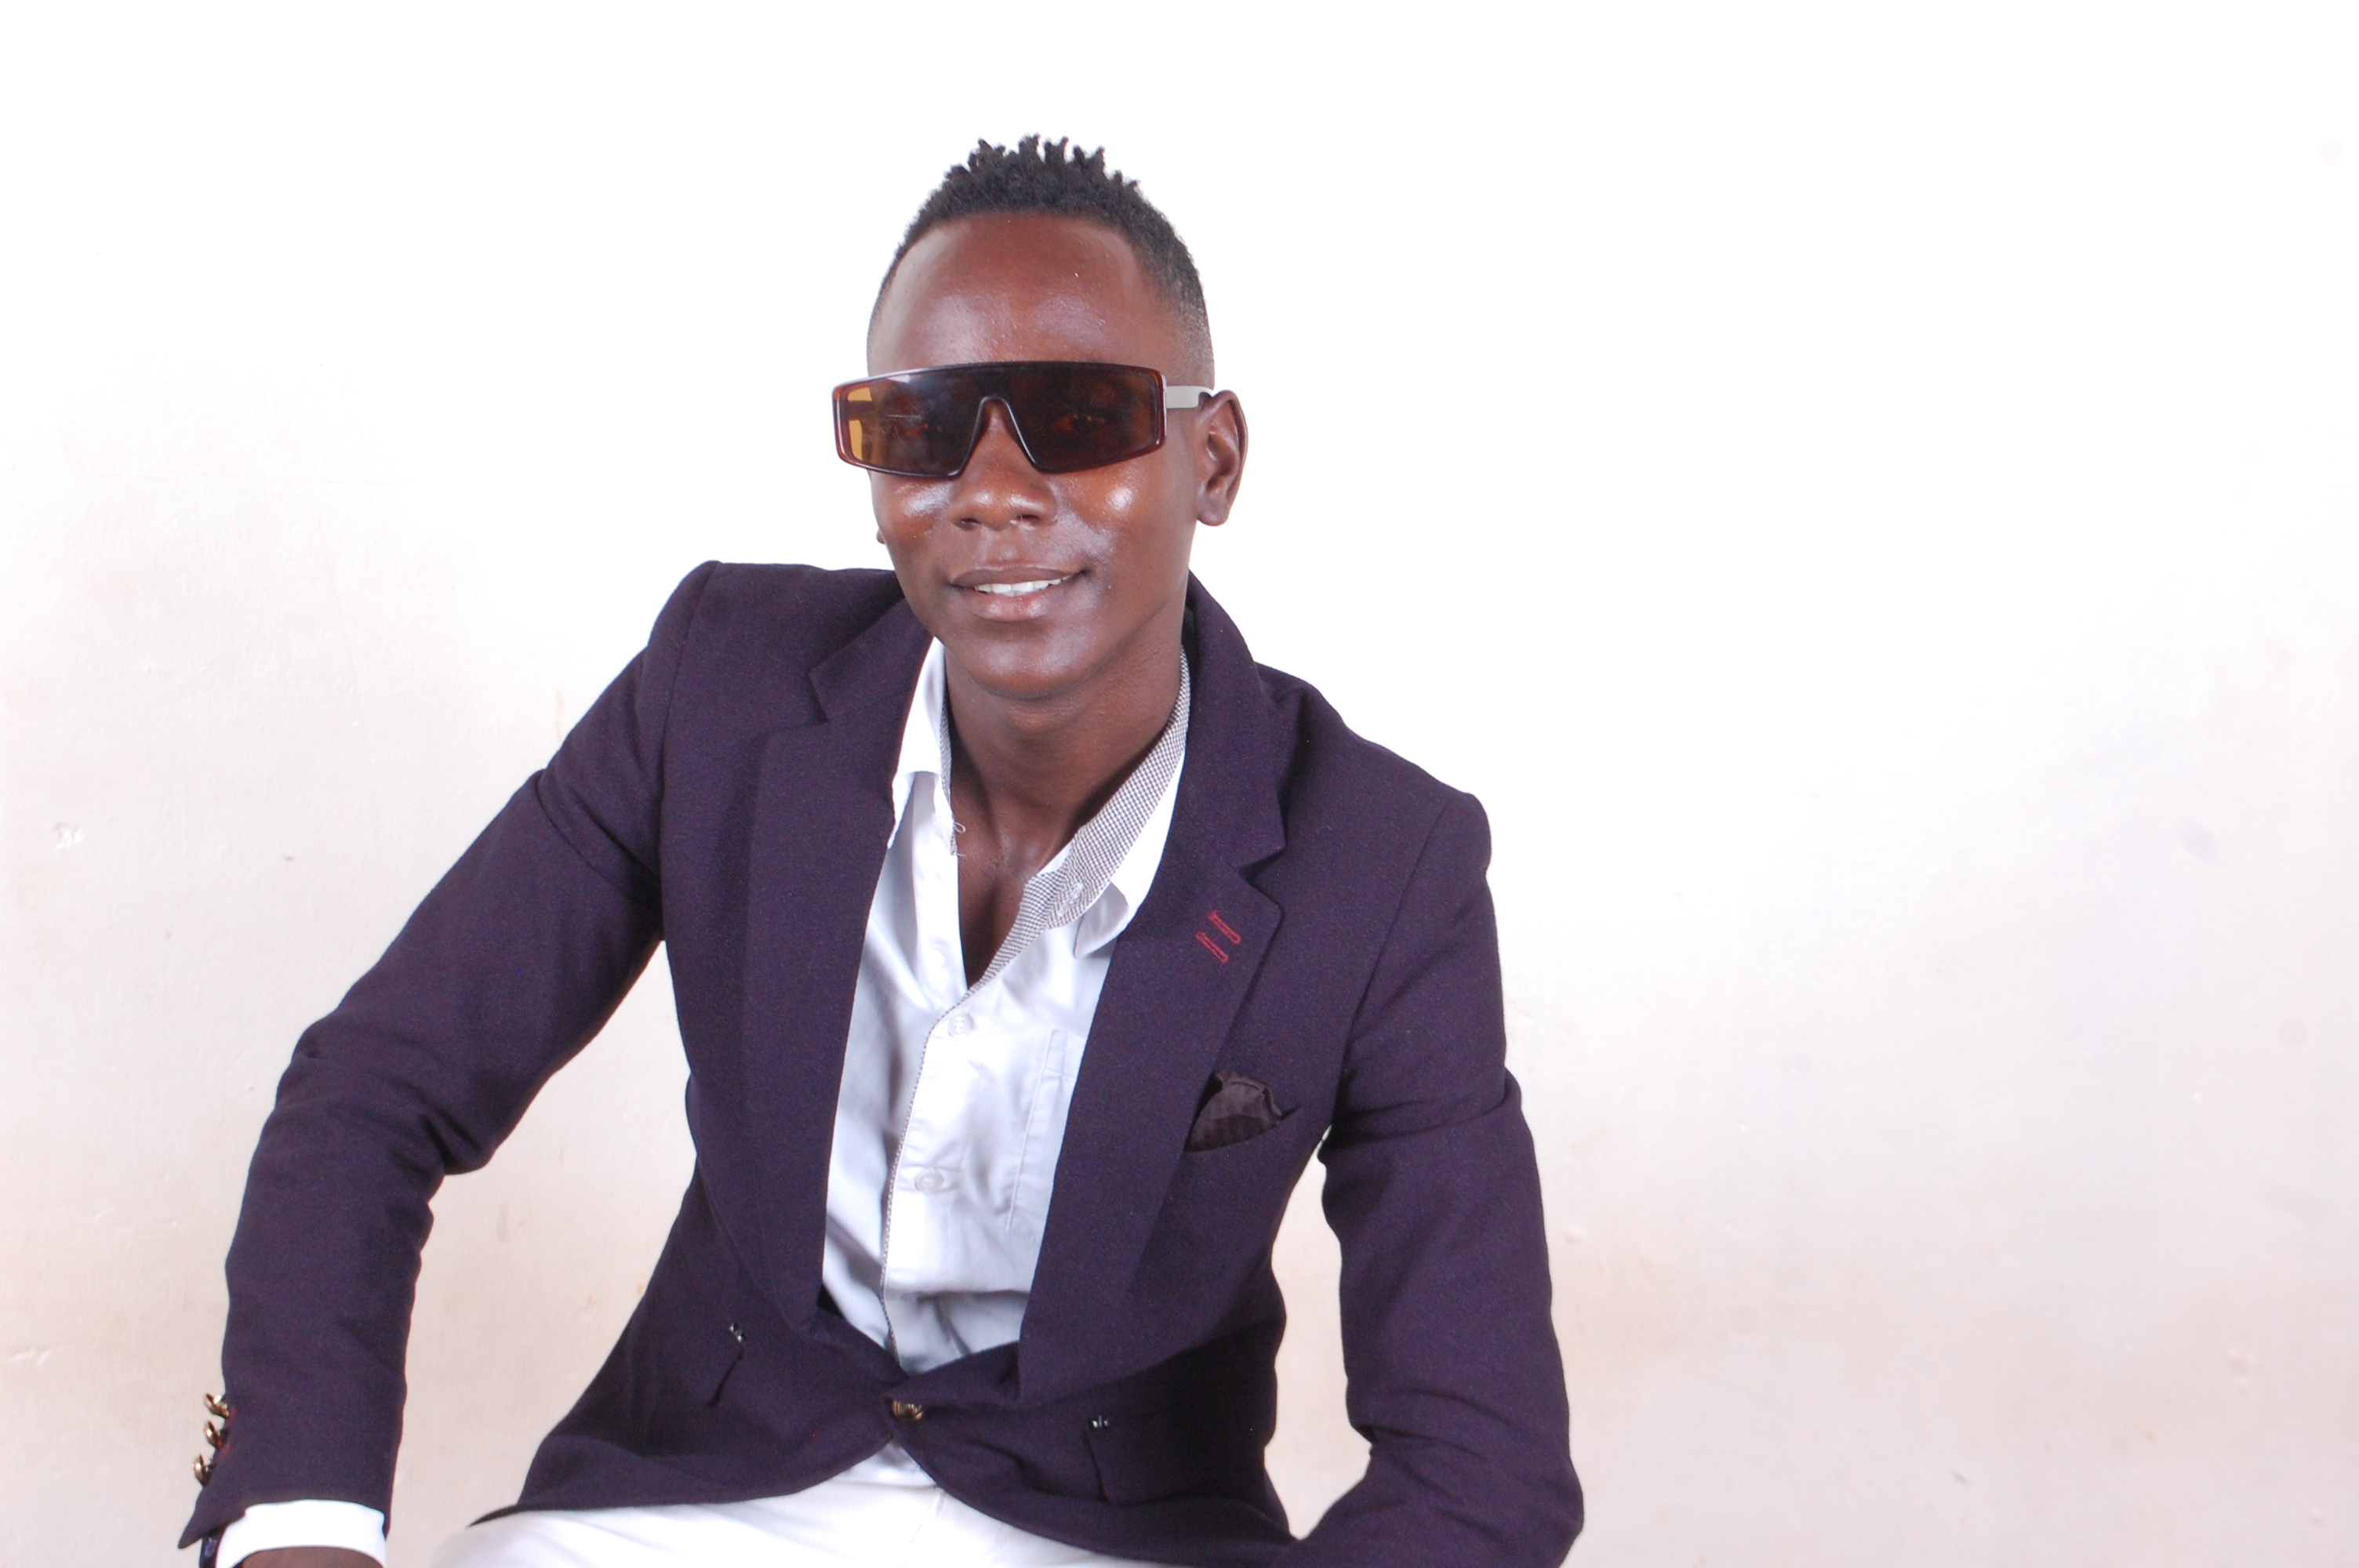 Prince Banken |Free Music, Mp3, Song Downloads, Video and Biography - LuoTunes.Com